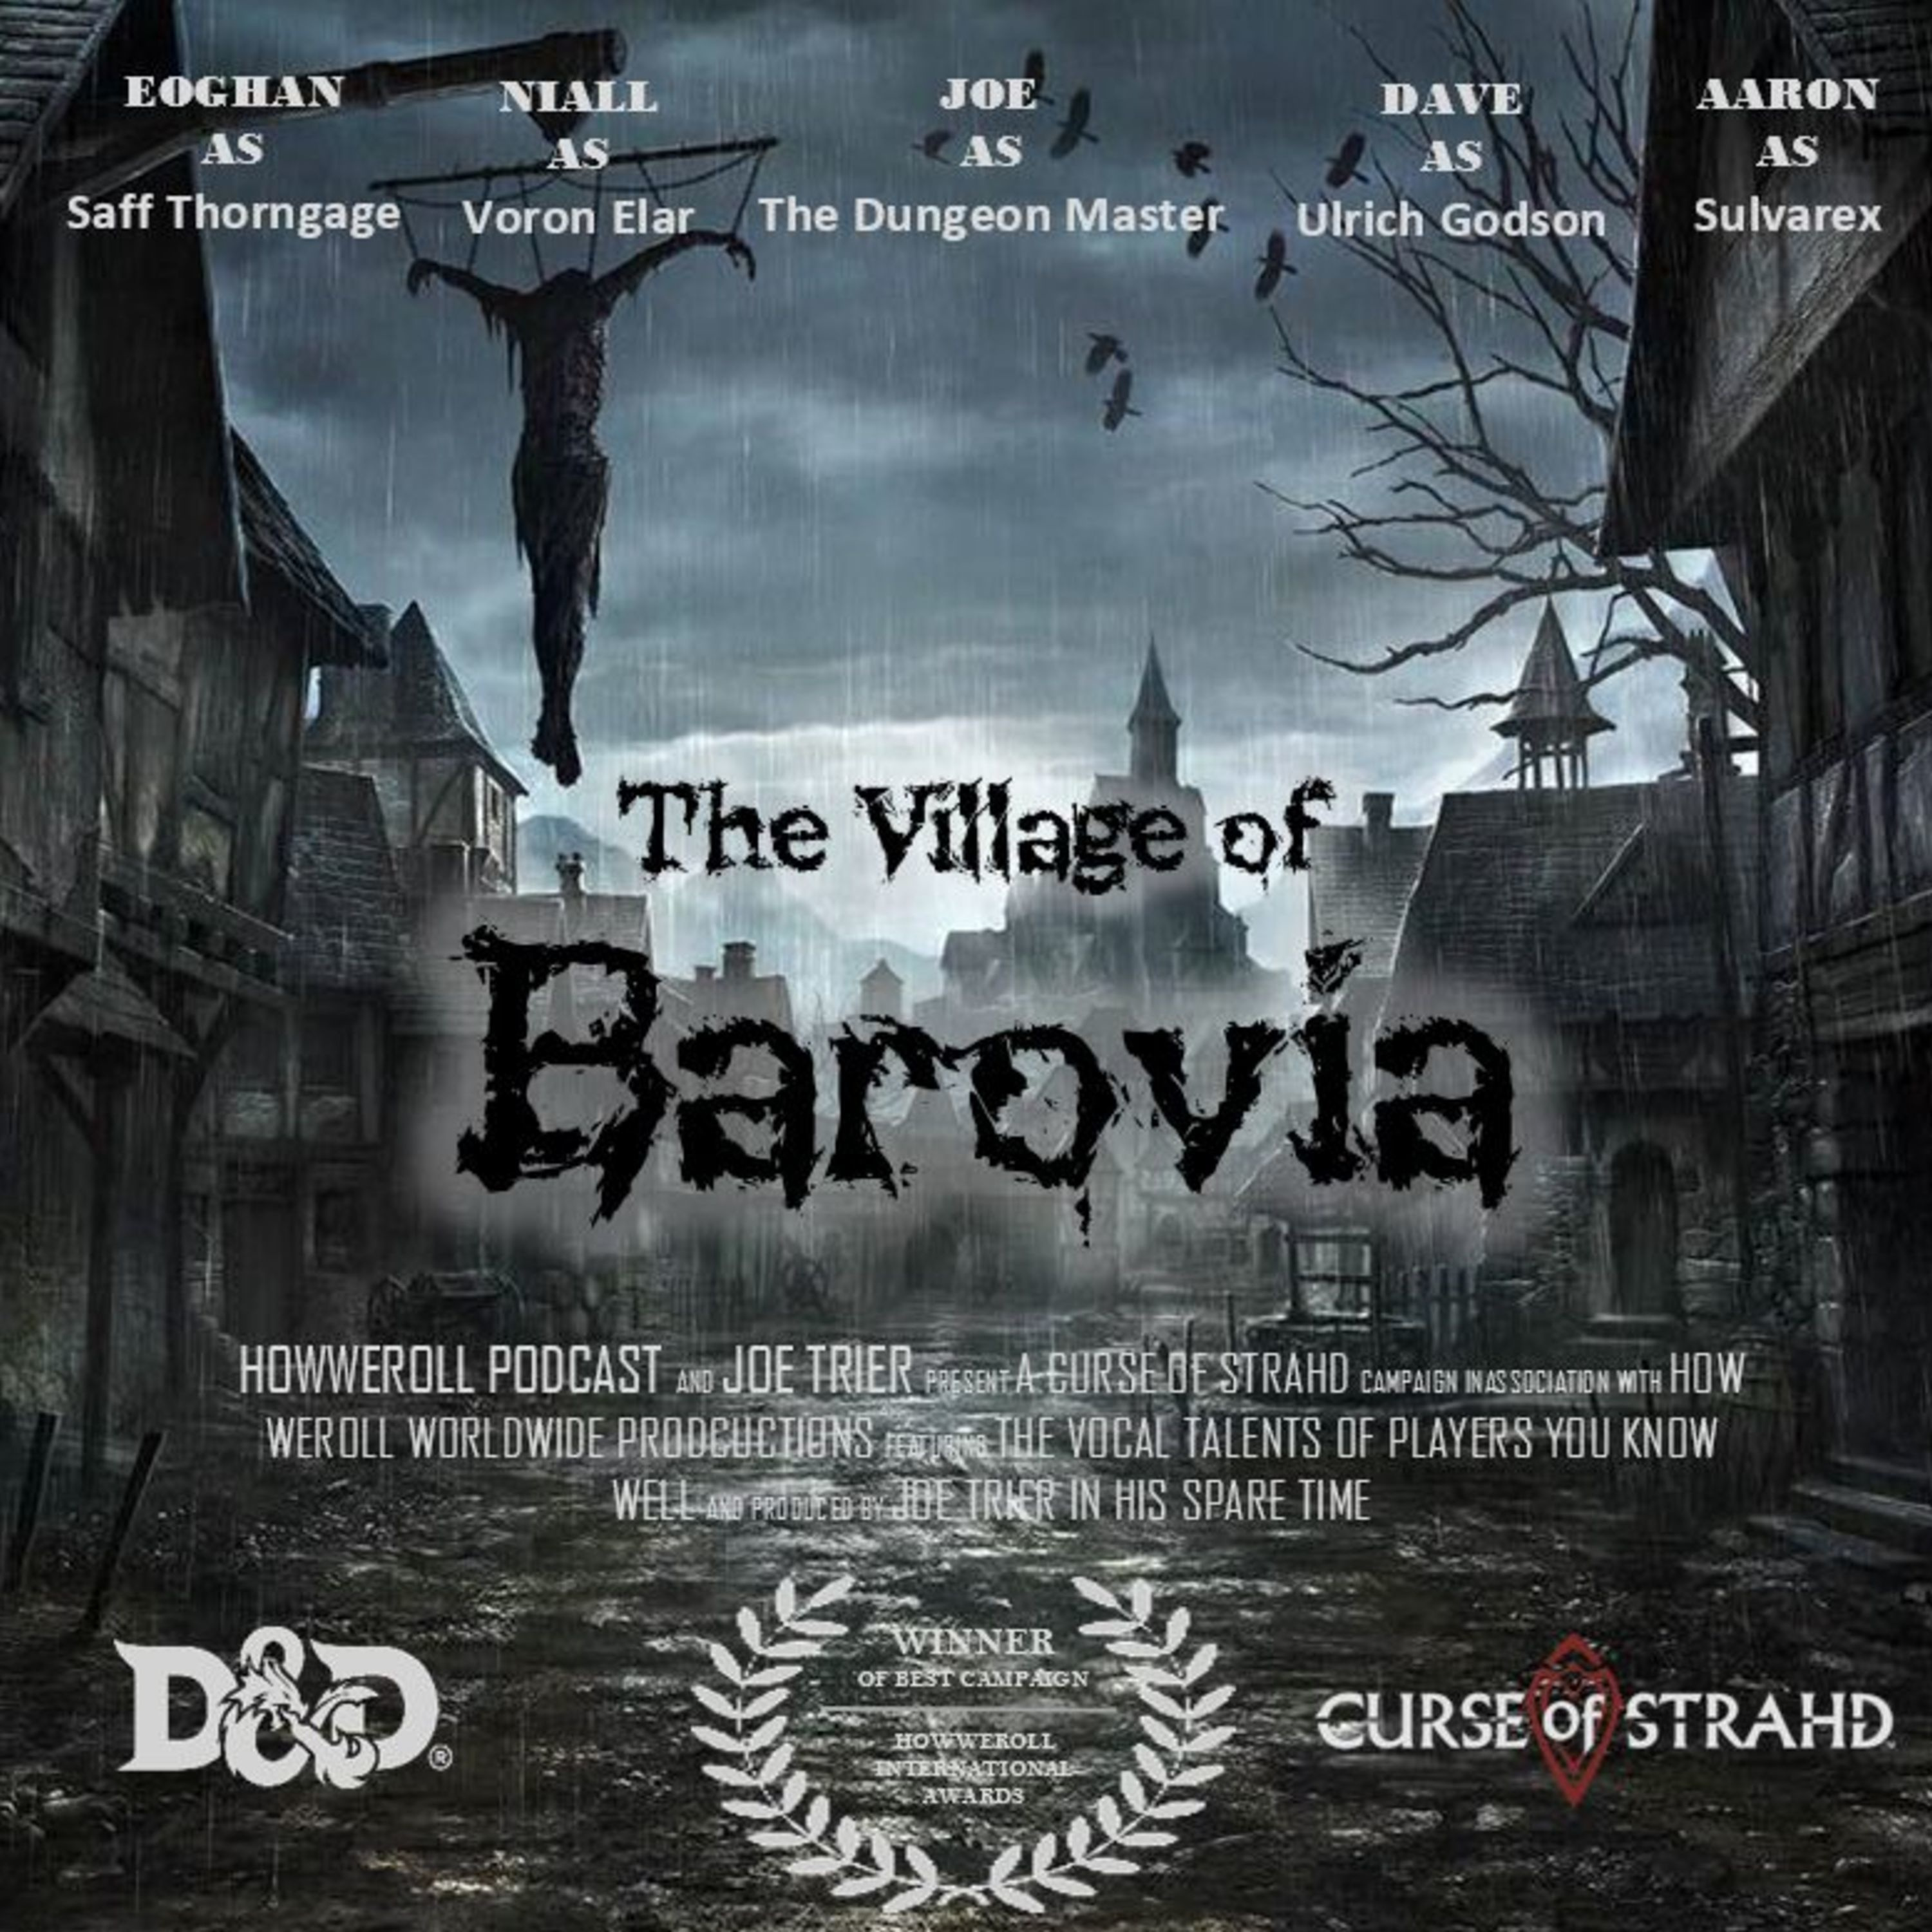 016 - Curse of Strahd - The Village of Barovia - How to Make